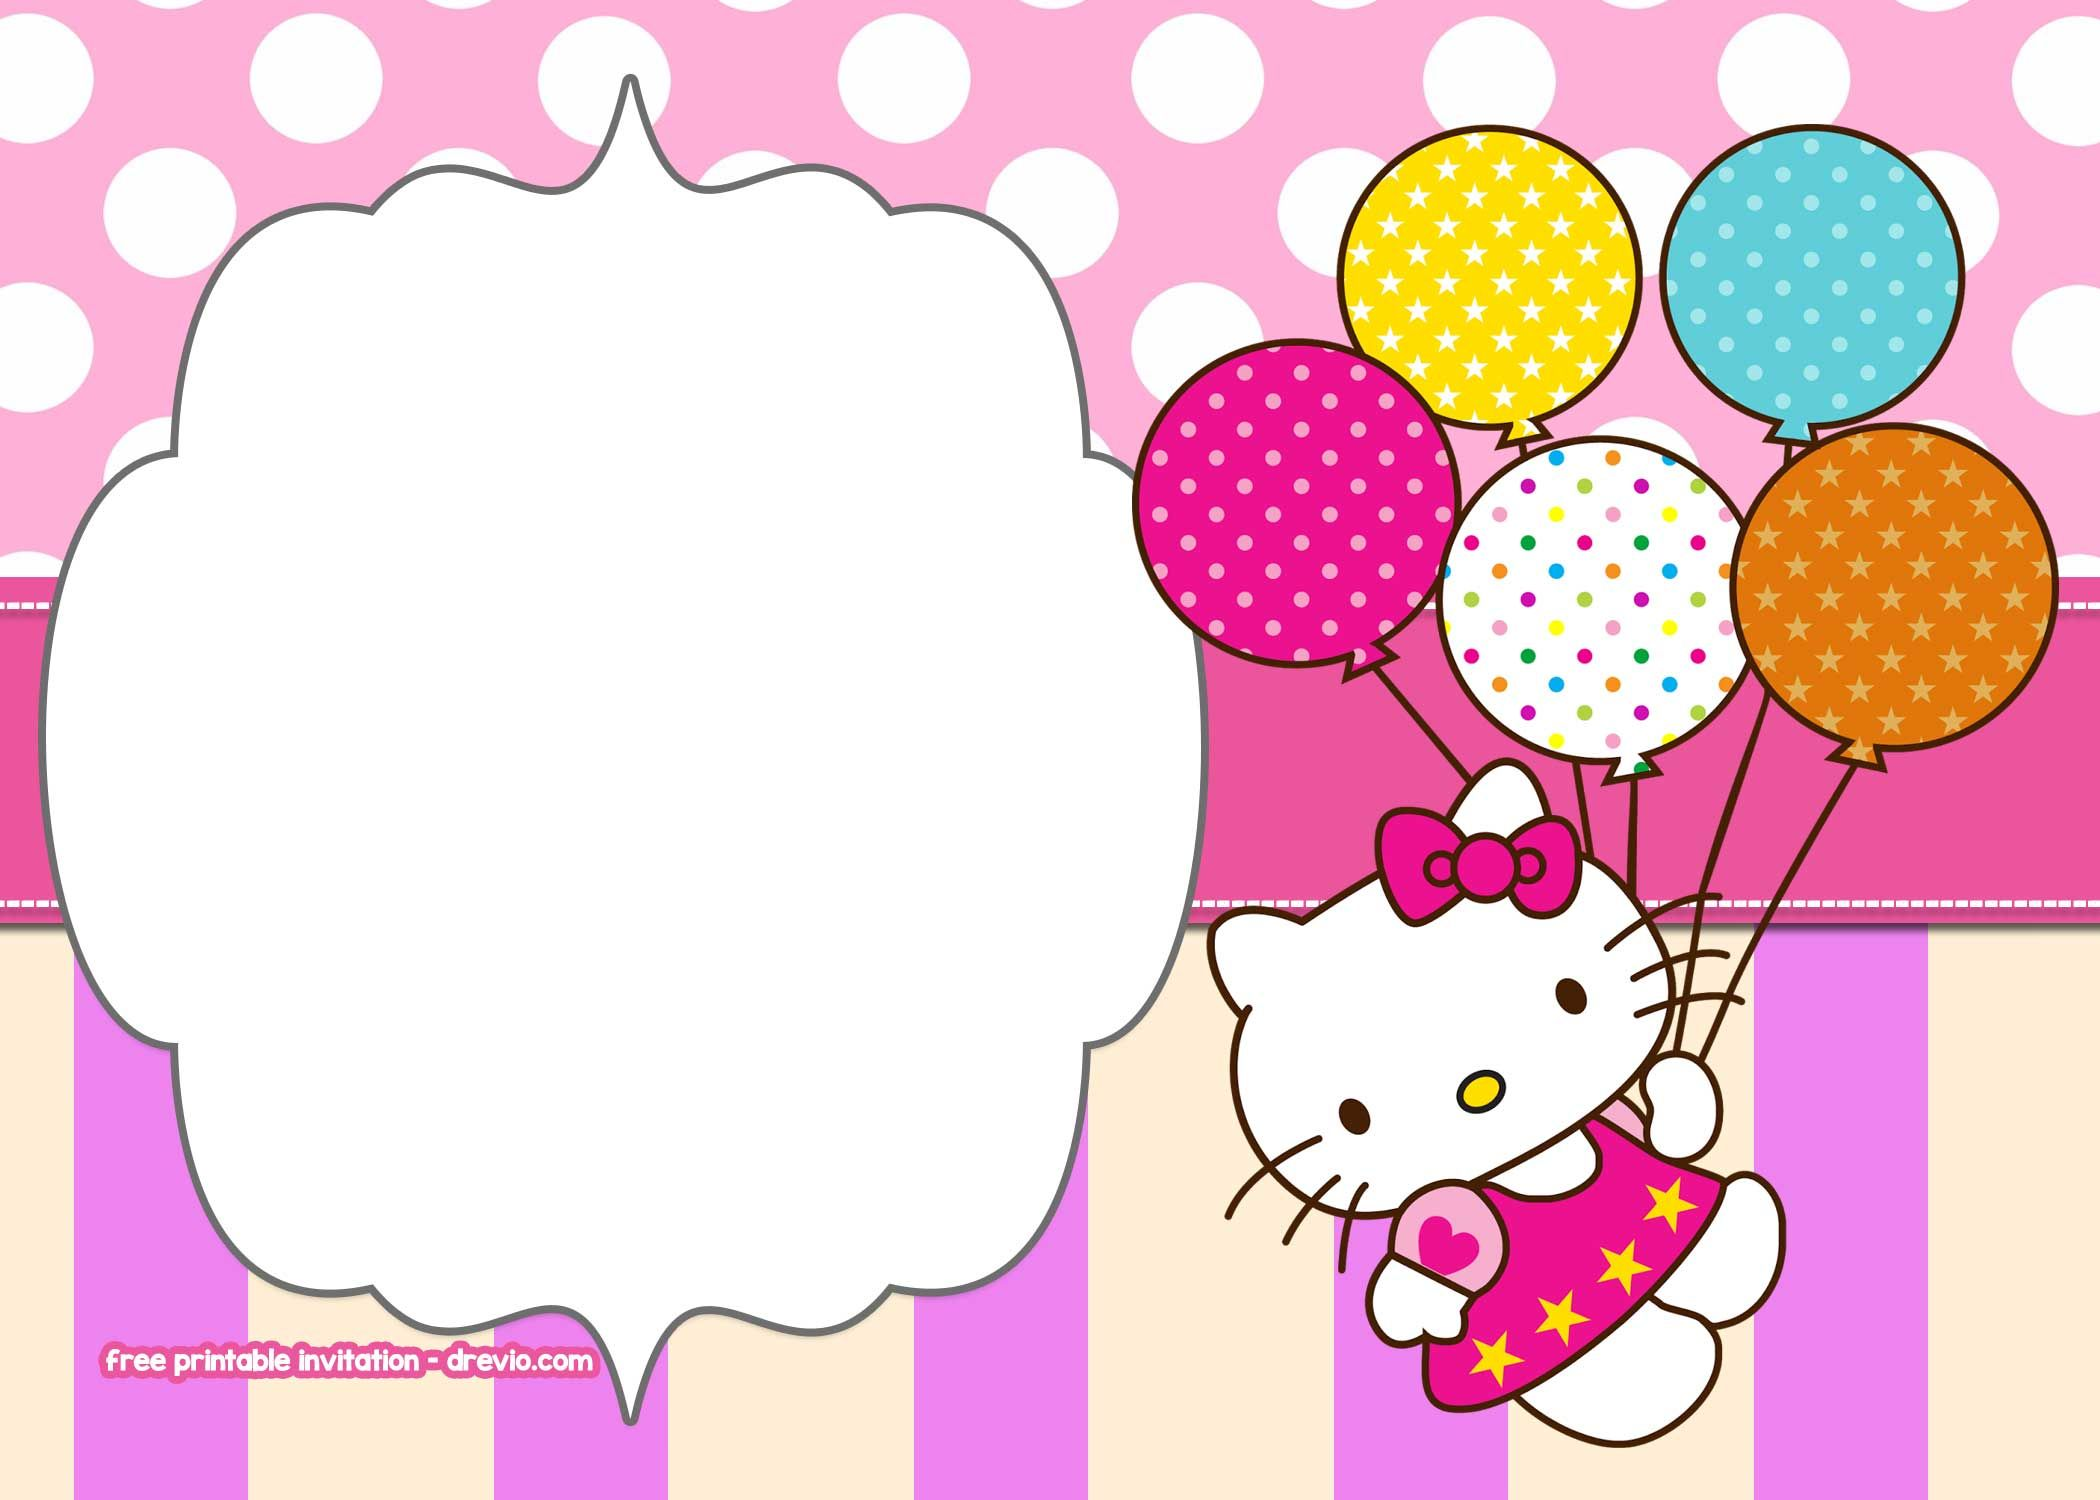 Free Printable Hello Kitty Pink Polka Dot Invitation Templates Hello Kitty Invitations Hello Kitty Invitation Card Hello Kitty Birthday